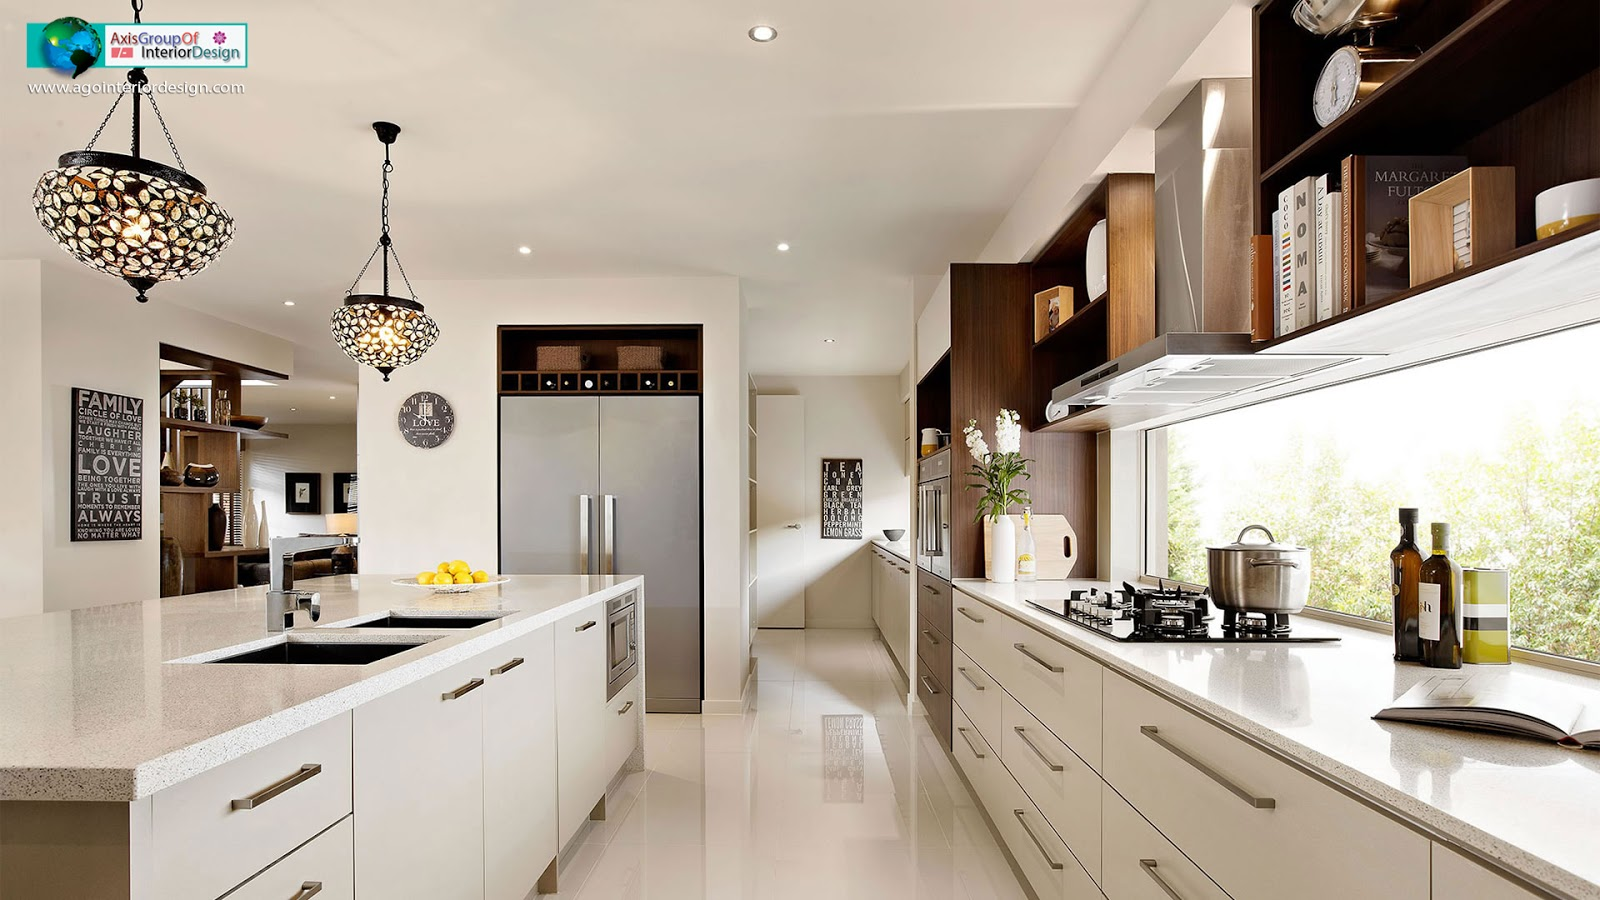 Axis Group Of Interior Design Kitchen Design